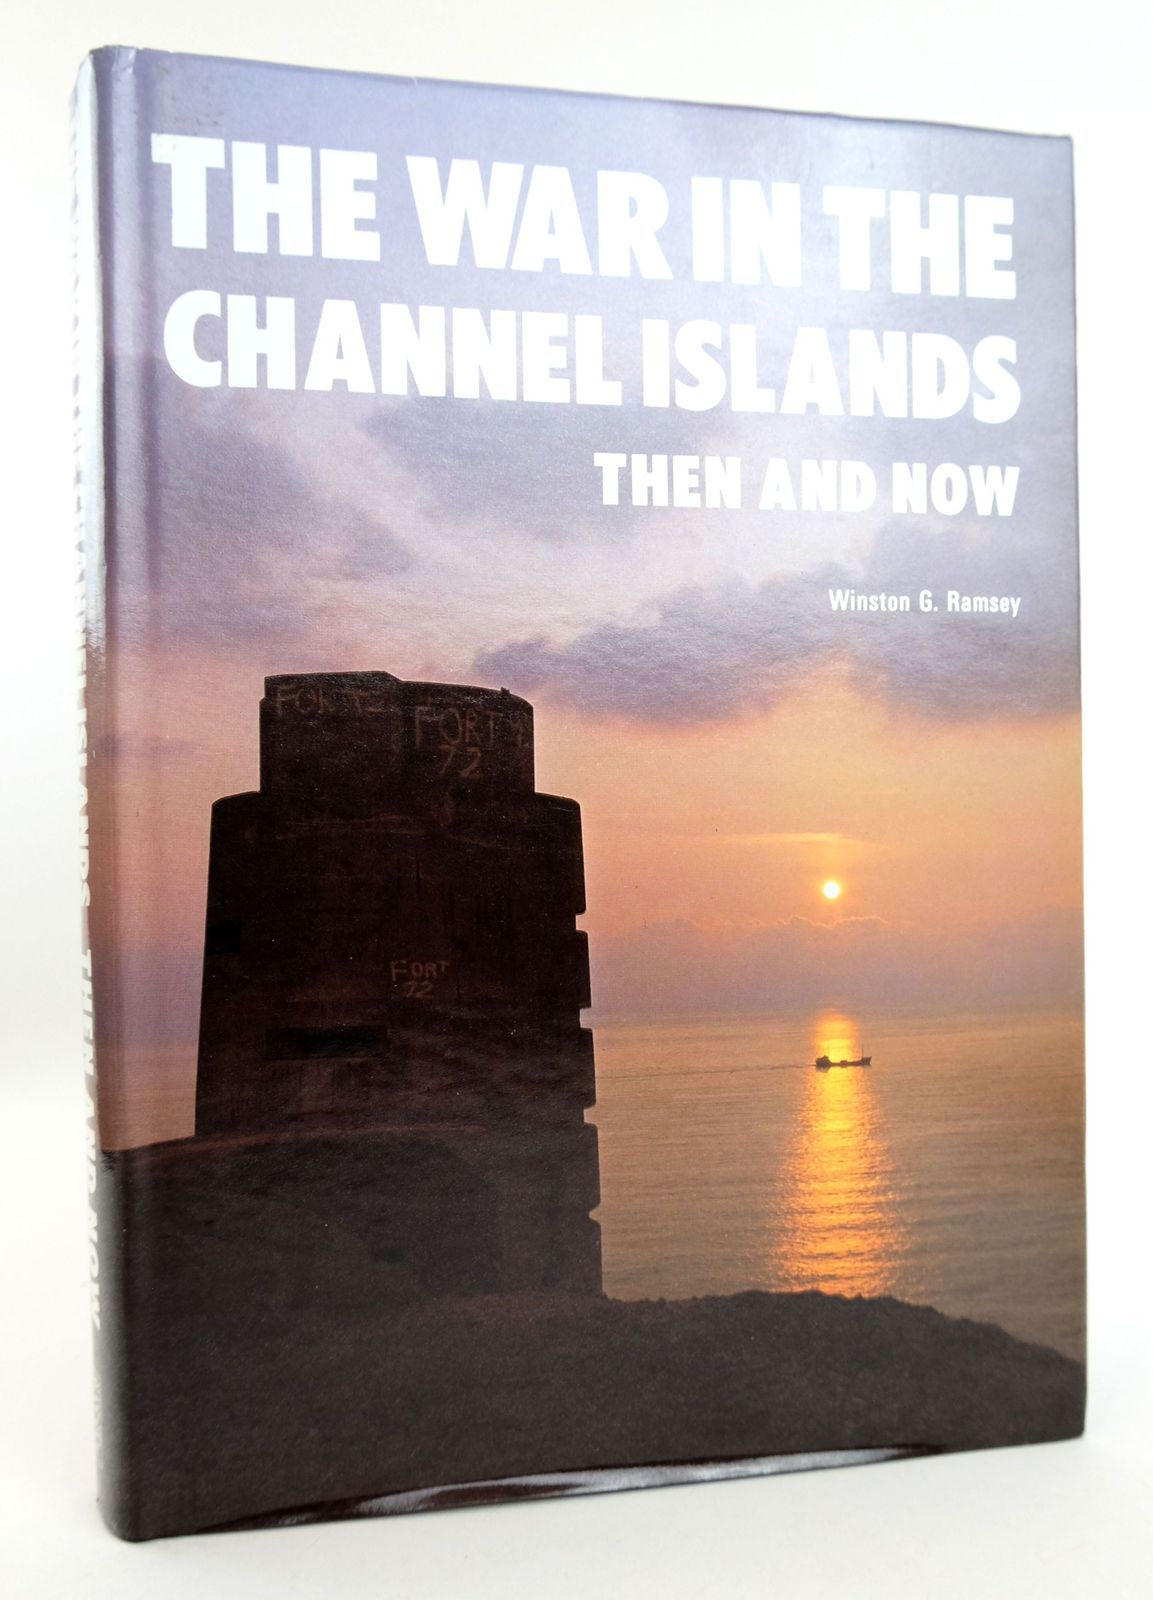 Photo of THE WAR IN THE CHANNEL ISLANDS THEN AND NOW written by Ramsey, Winston G. published by Battle of Britain Prints International Ltd. (STOCK CODE: 1819016)  for sale by Stella & Rose's Books